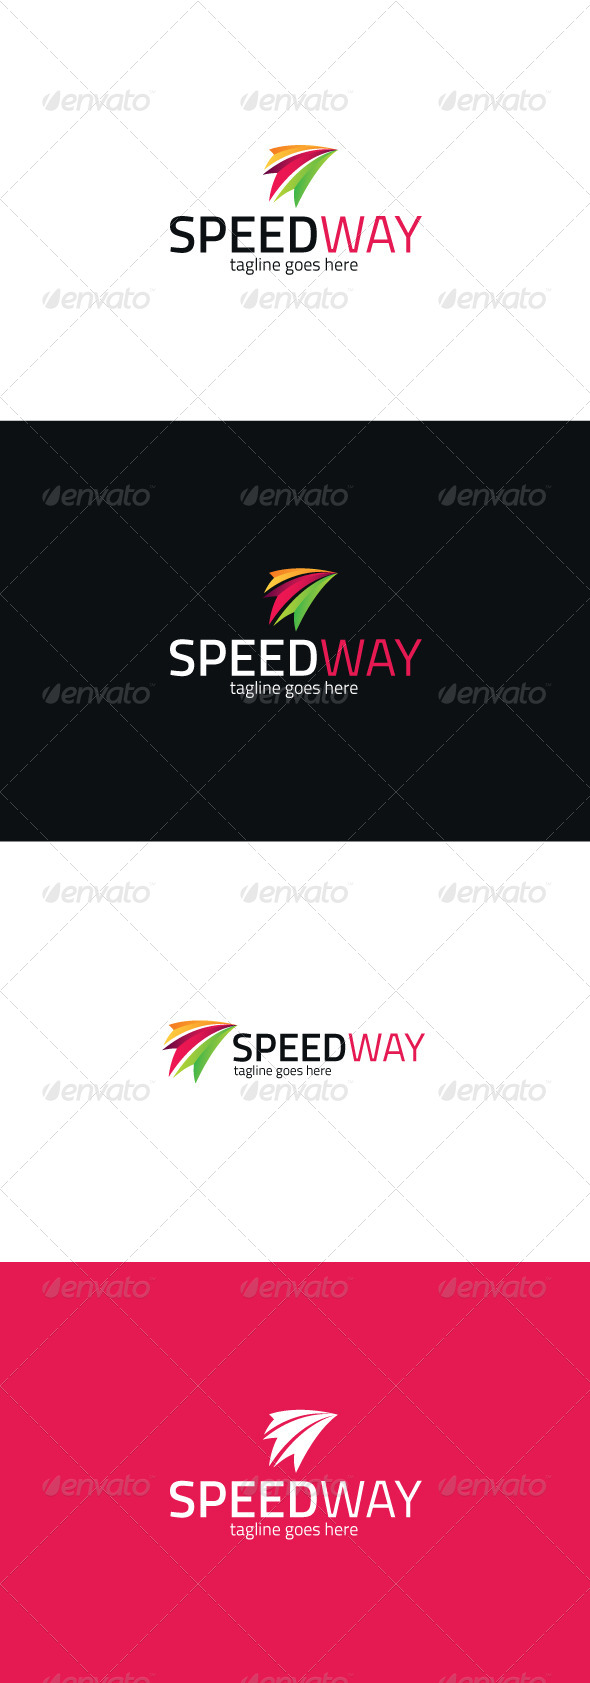 GraphicRiver Speed Way Logo 8373900